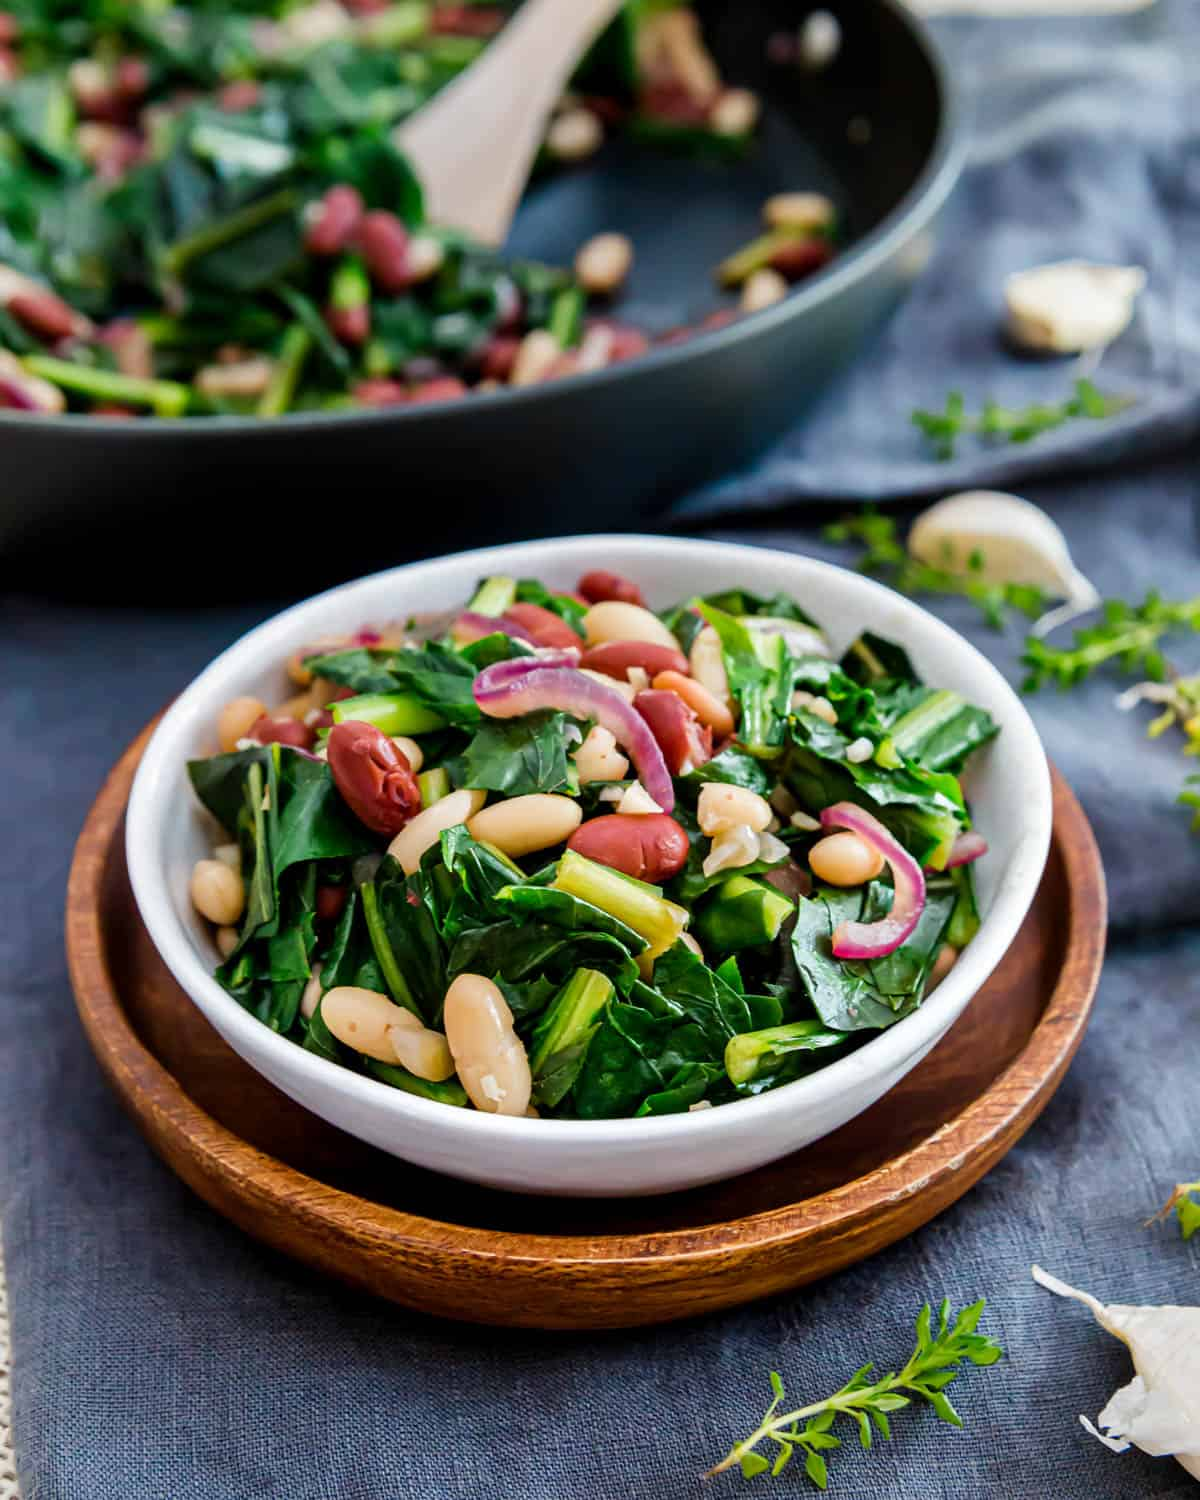 An easy recipe for sautéed dandelion greens with cannellini and kidney beans makes a simple vegetarian meal that's ready in under 30 minutes.